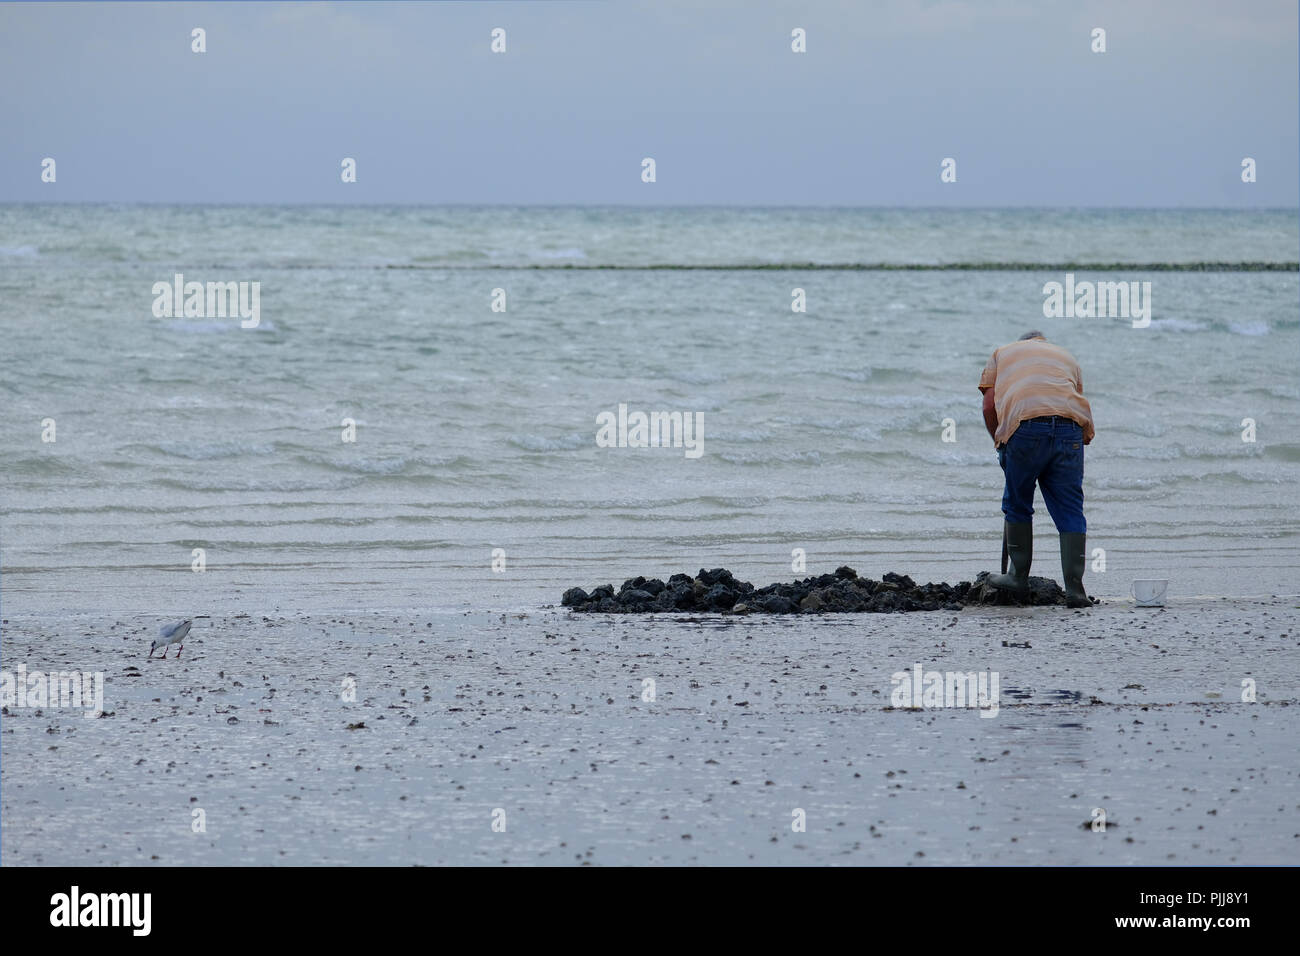 Elderly man digging for Lugworms in the sand at low tide on UK beach - Stock Image